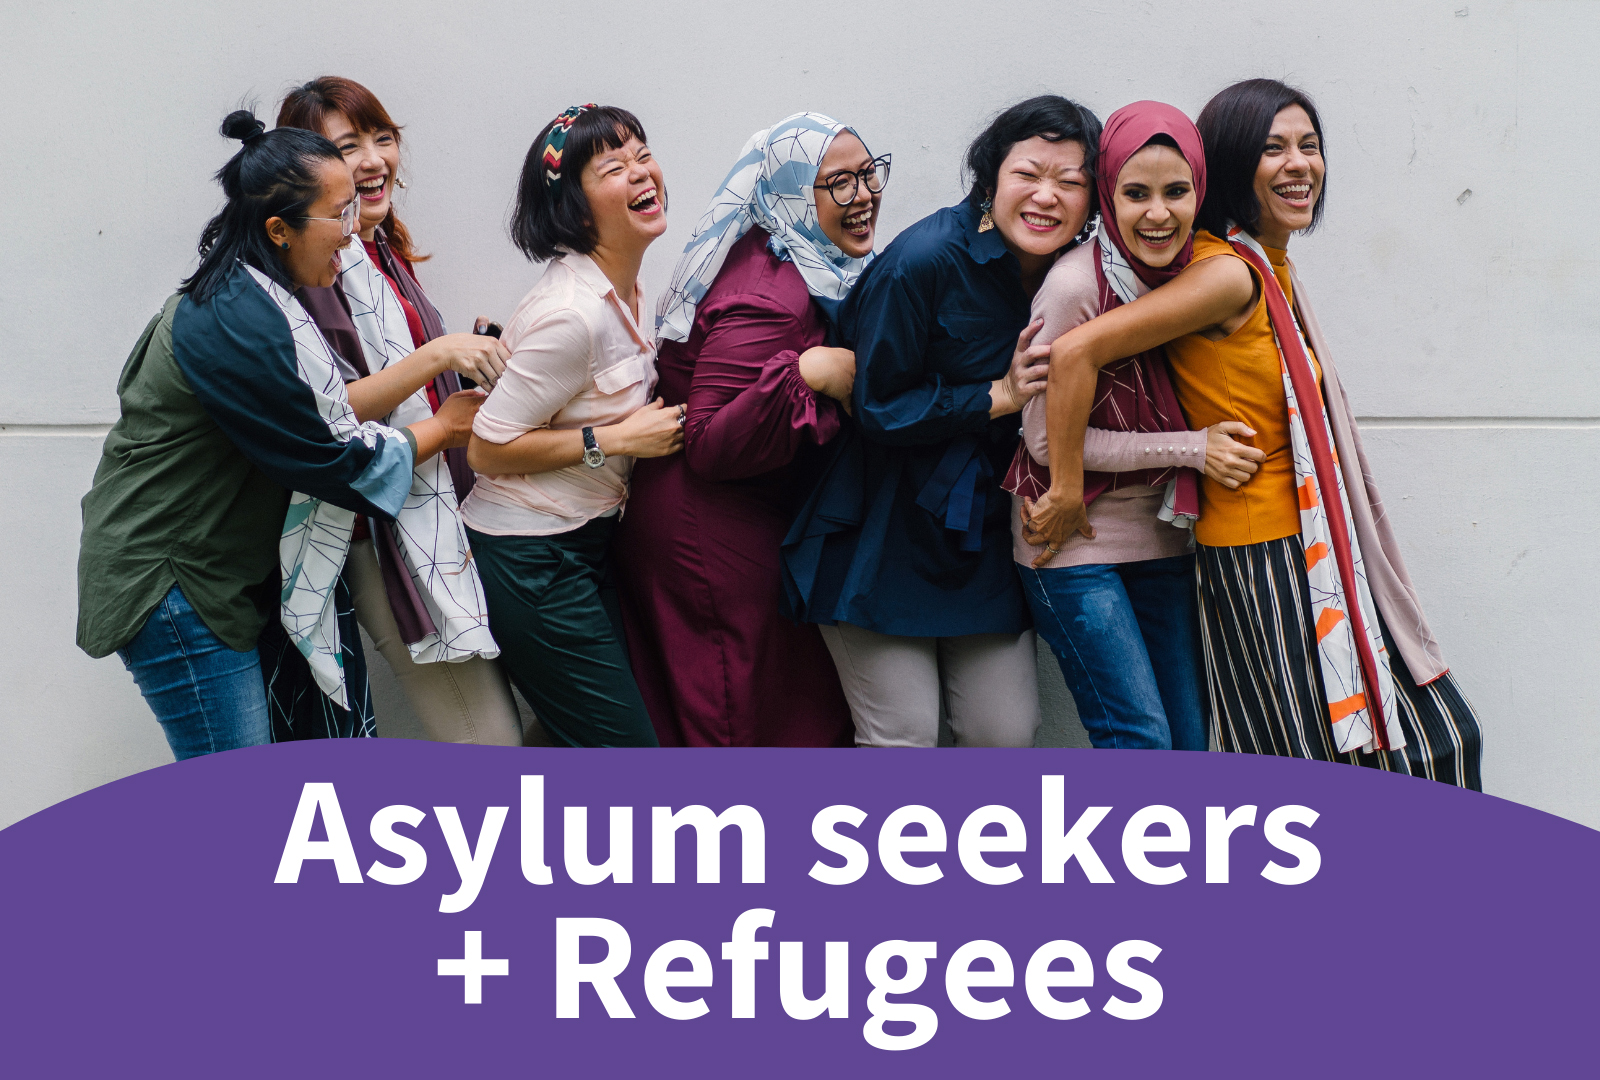 Asylum seekers and refugees